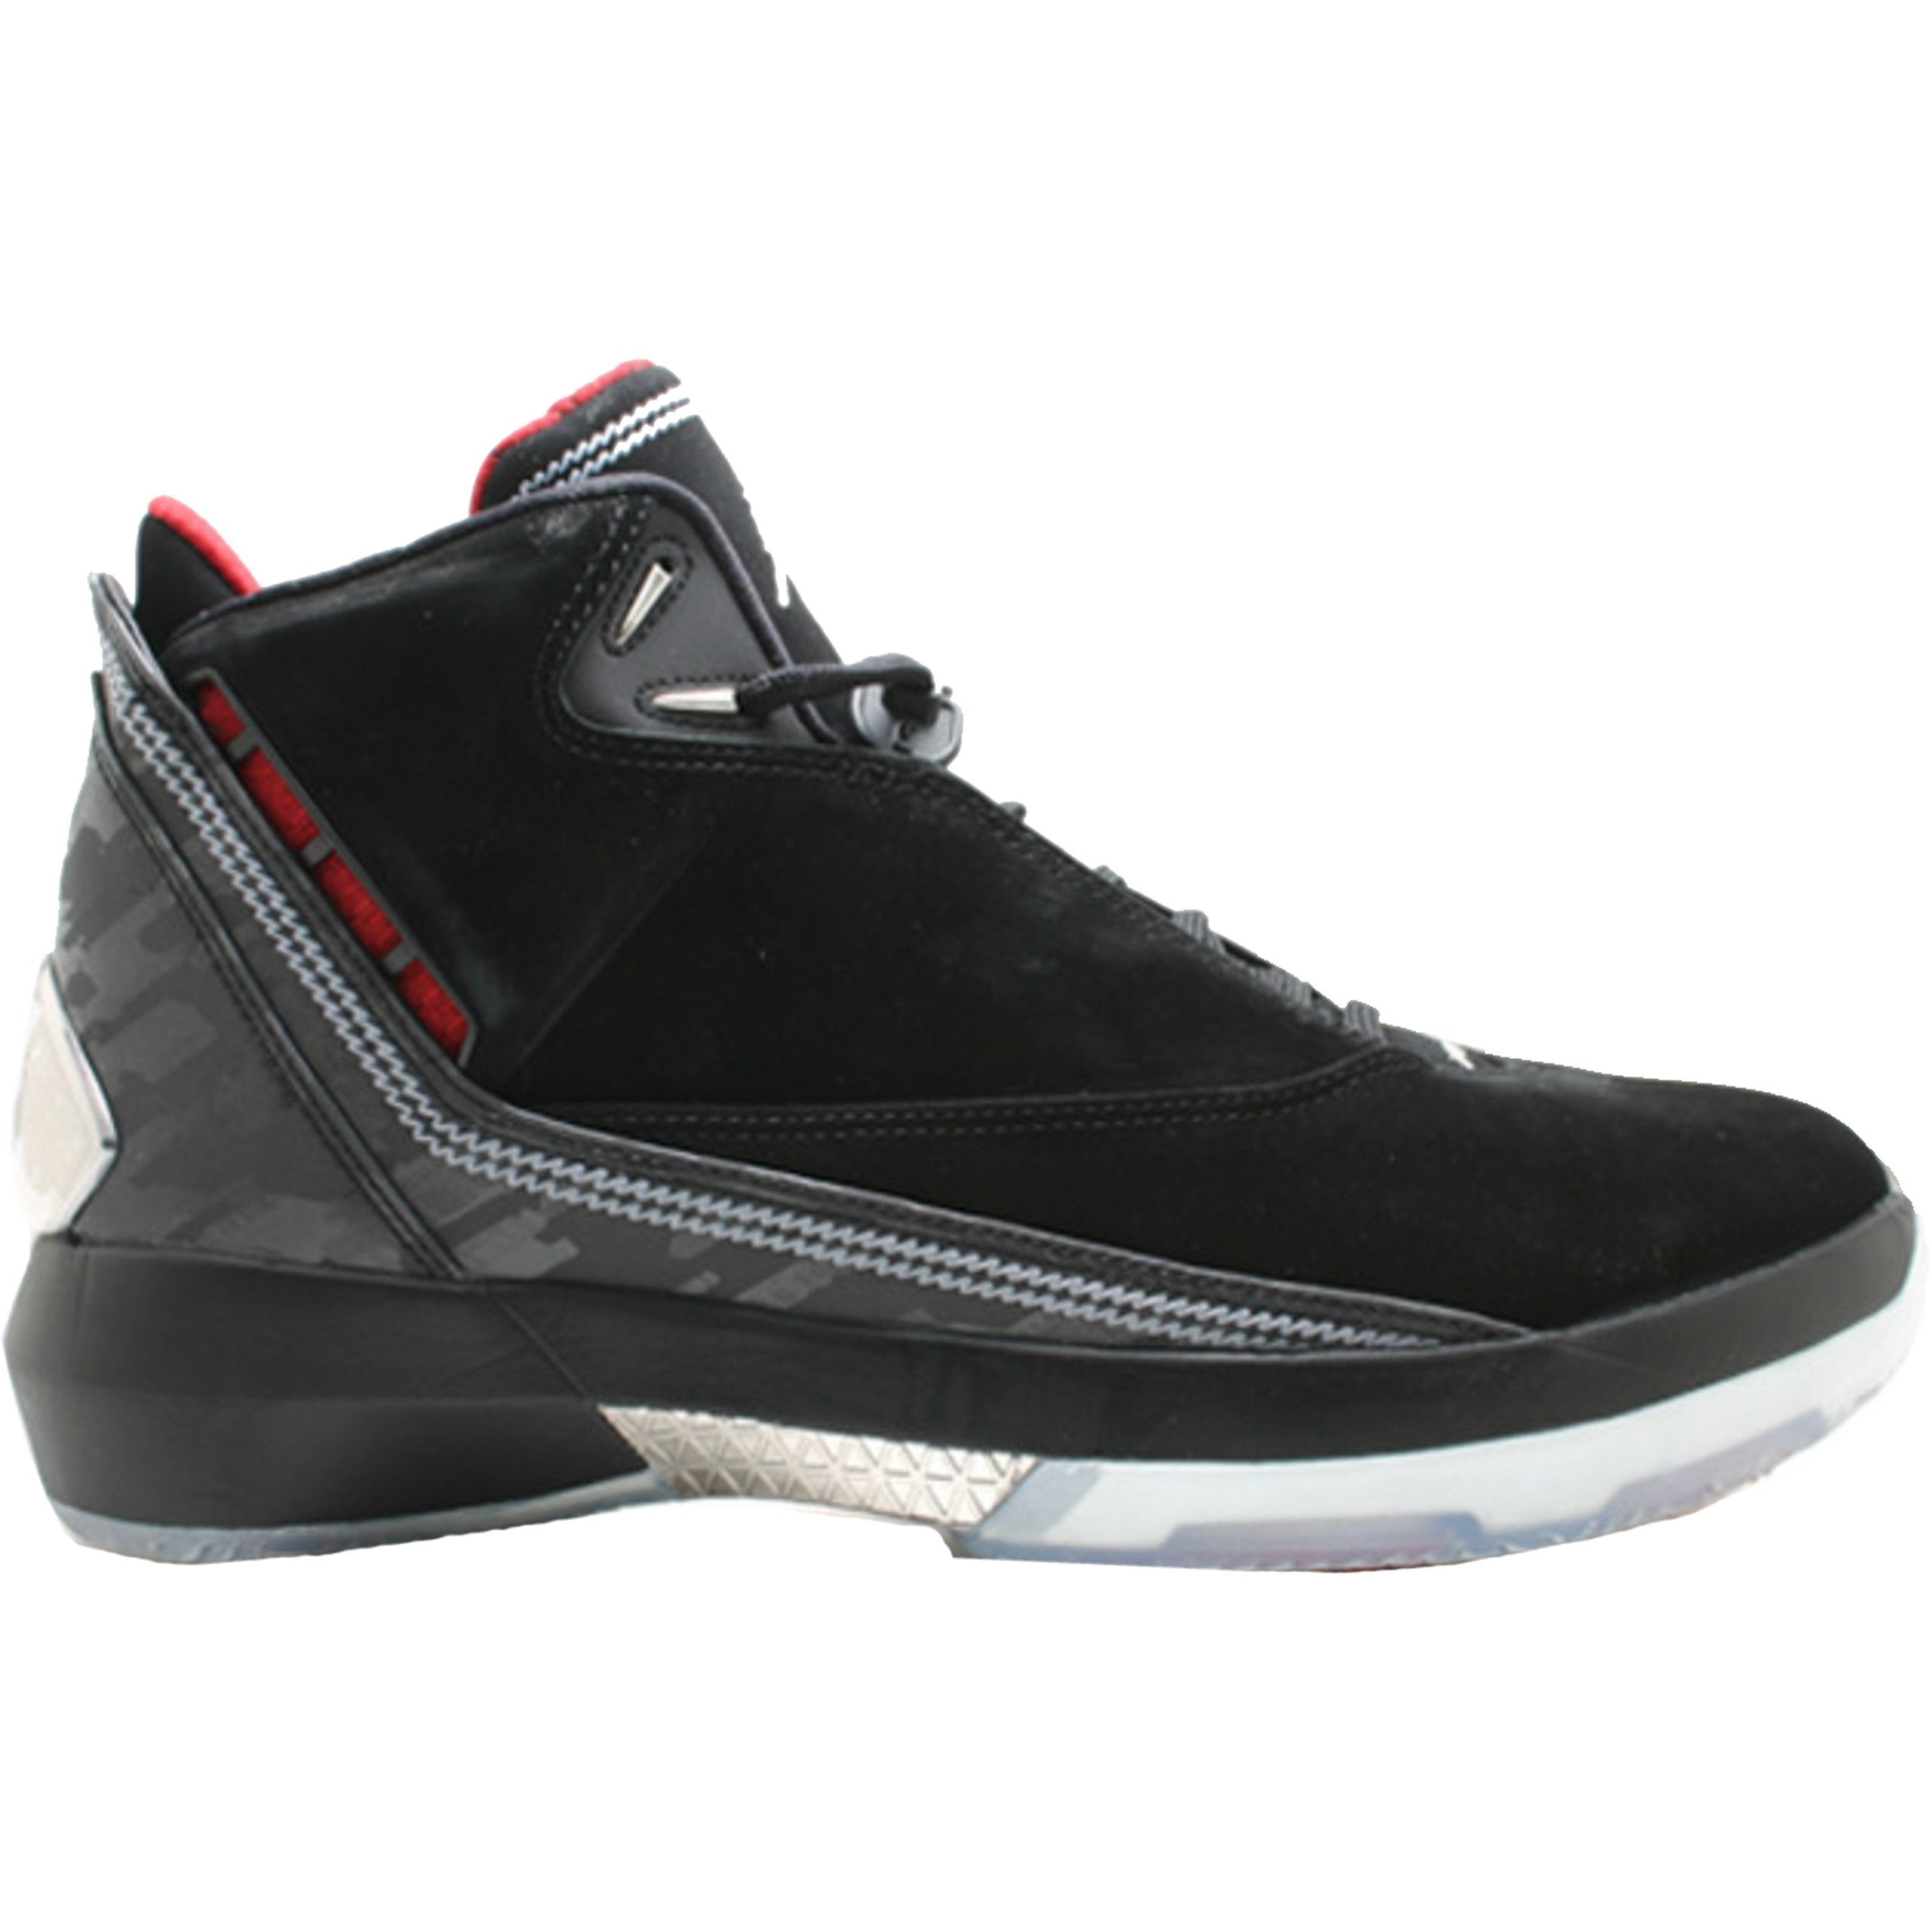 Jordan 22 OG Black Varisty Red (315299-001)